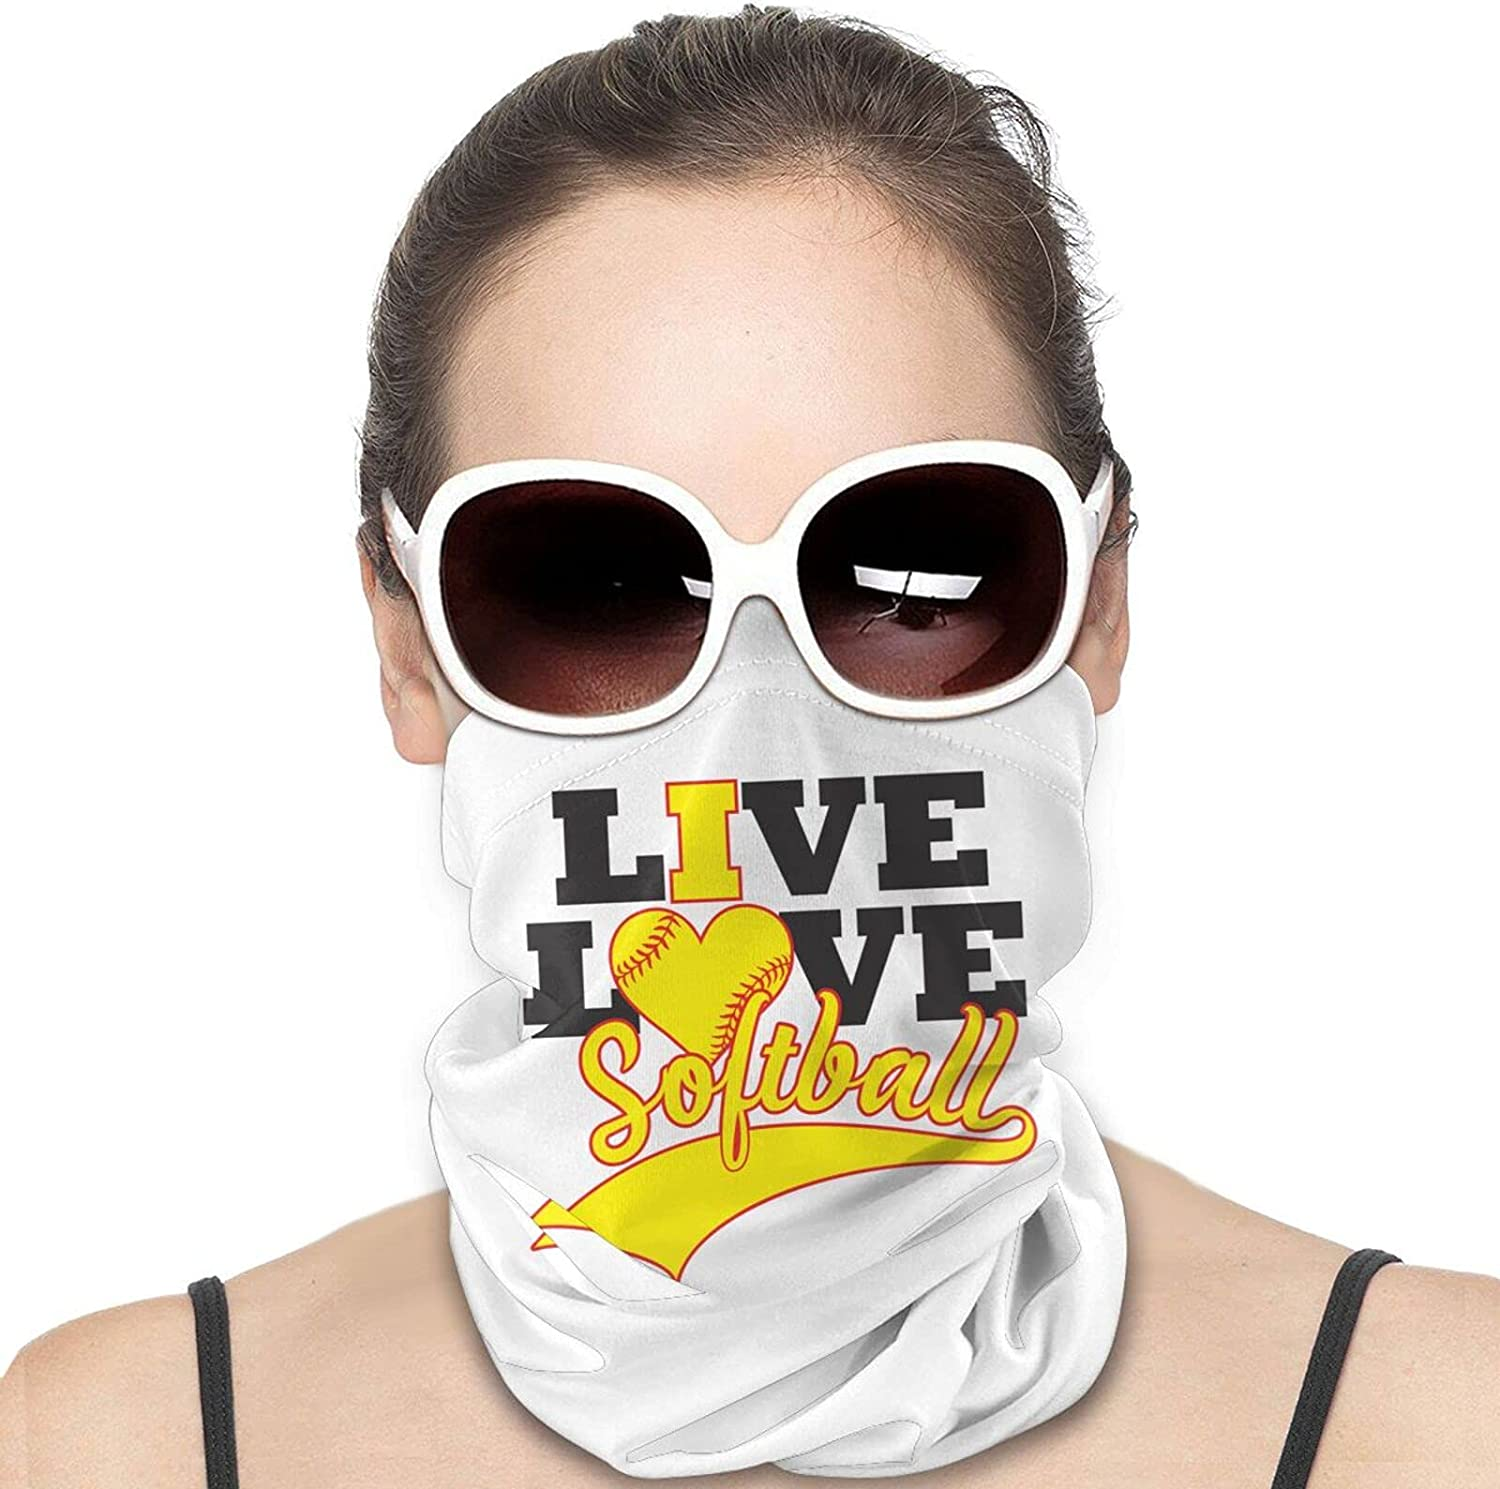 Live Love Softball Round Neck Gaiter Bandnas Face Cover Uv Protection Prevent bask in Ice Scarf Headbands Perfect for Motorcycle Cycling Running Festival Raves Outdoors